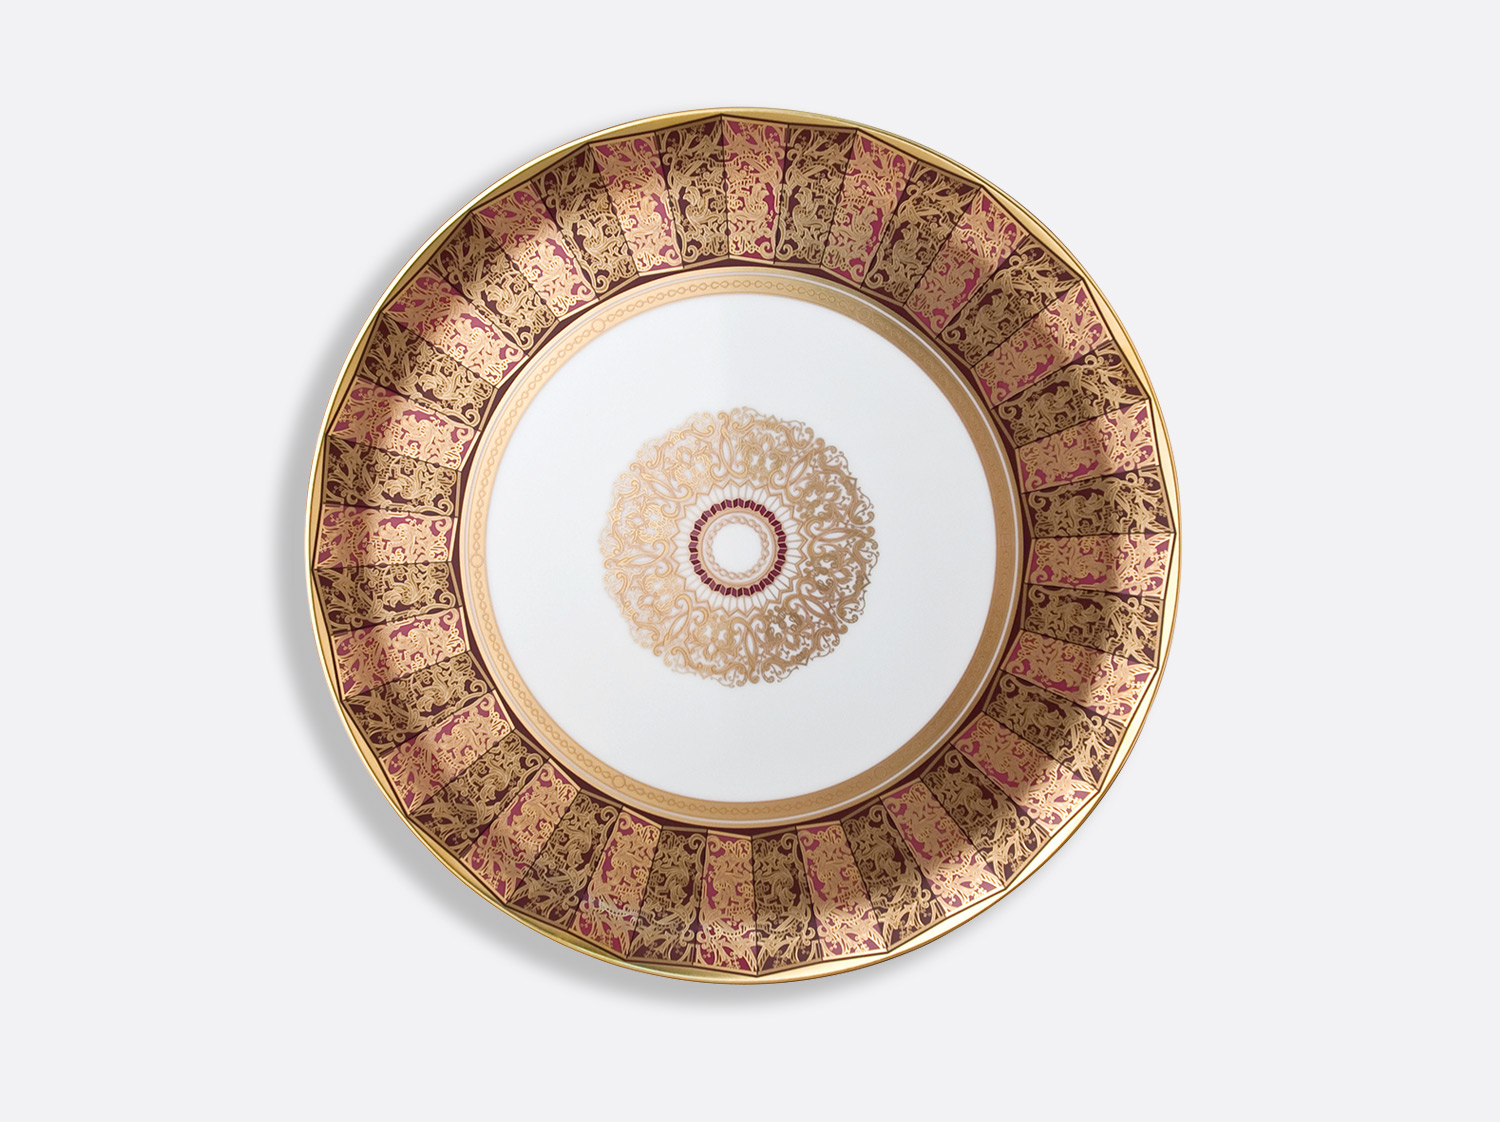 Plat à tarte 32 cm en porcelaine de la collection Eventail Bernardaud